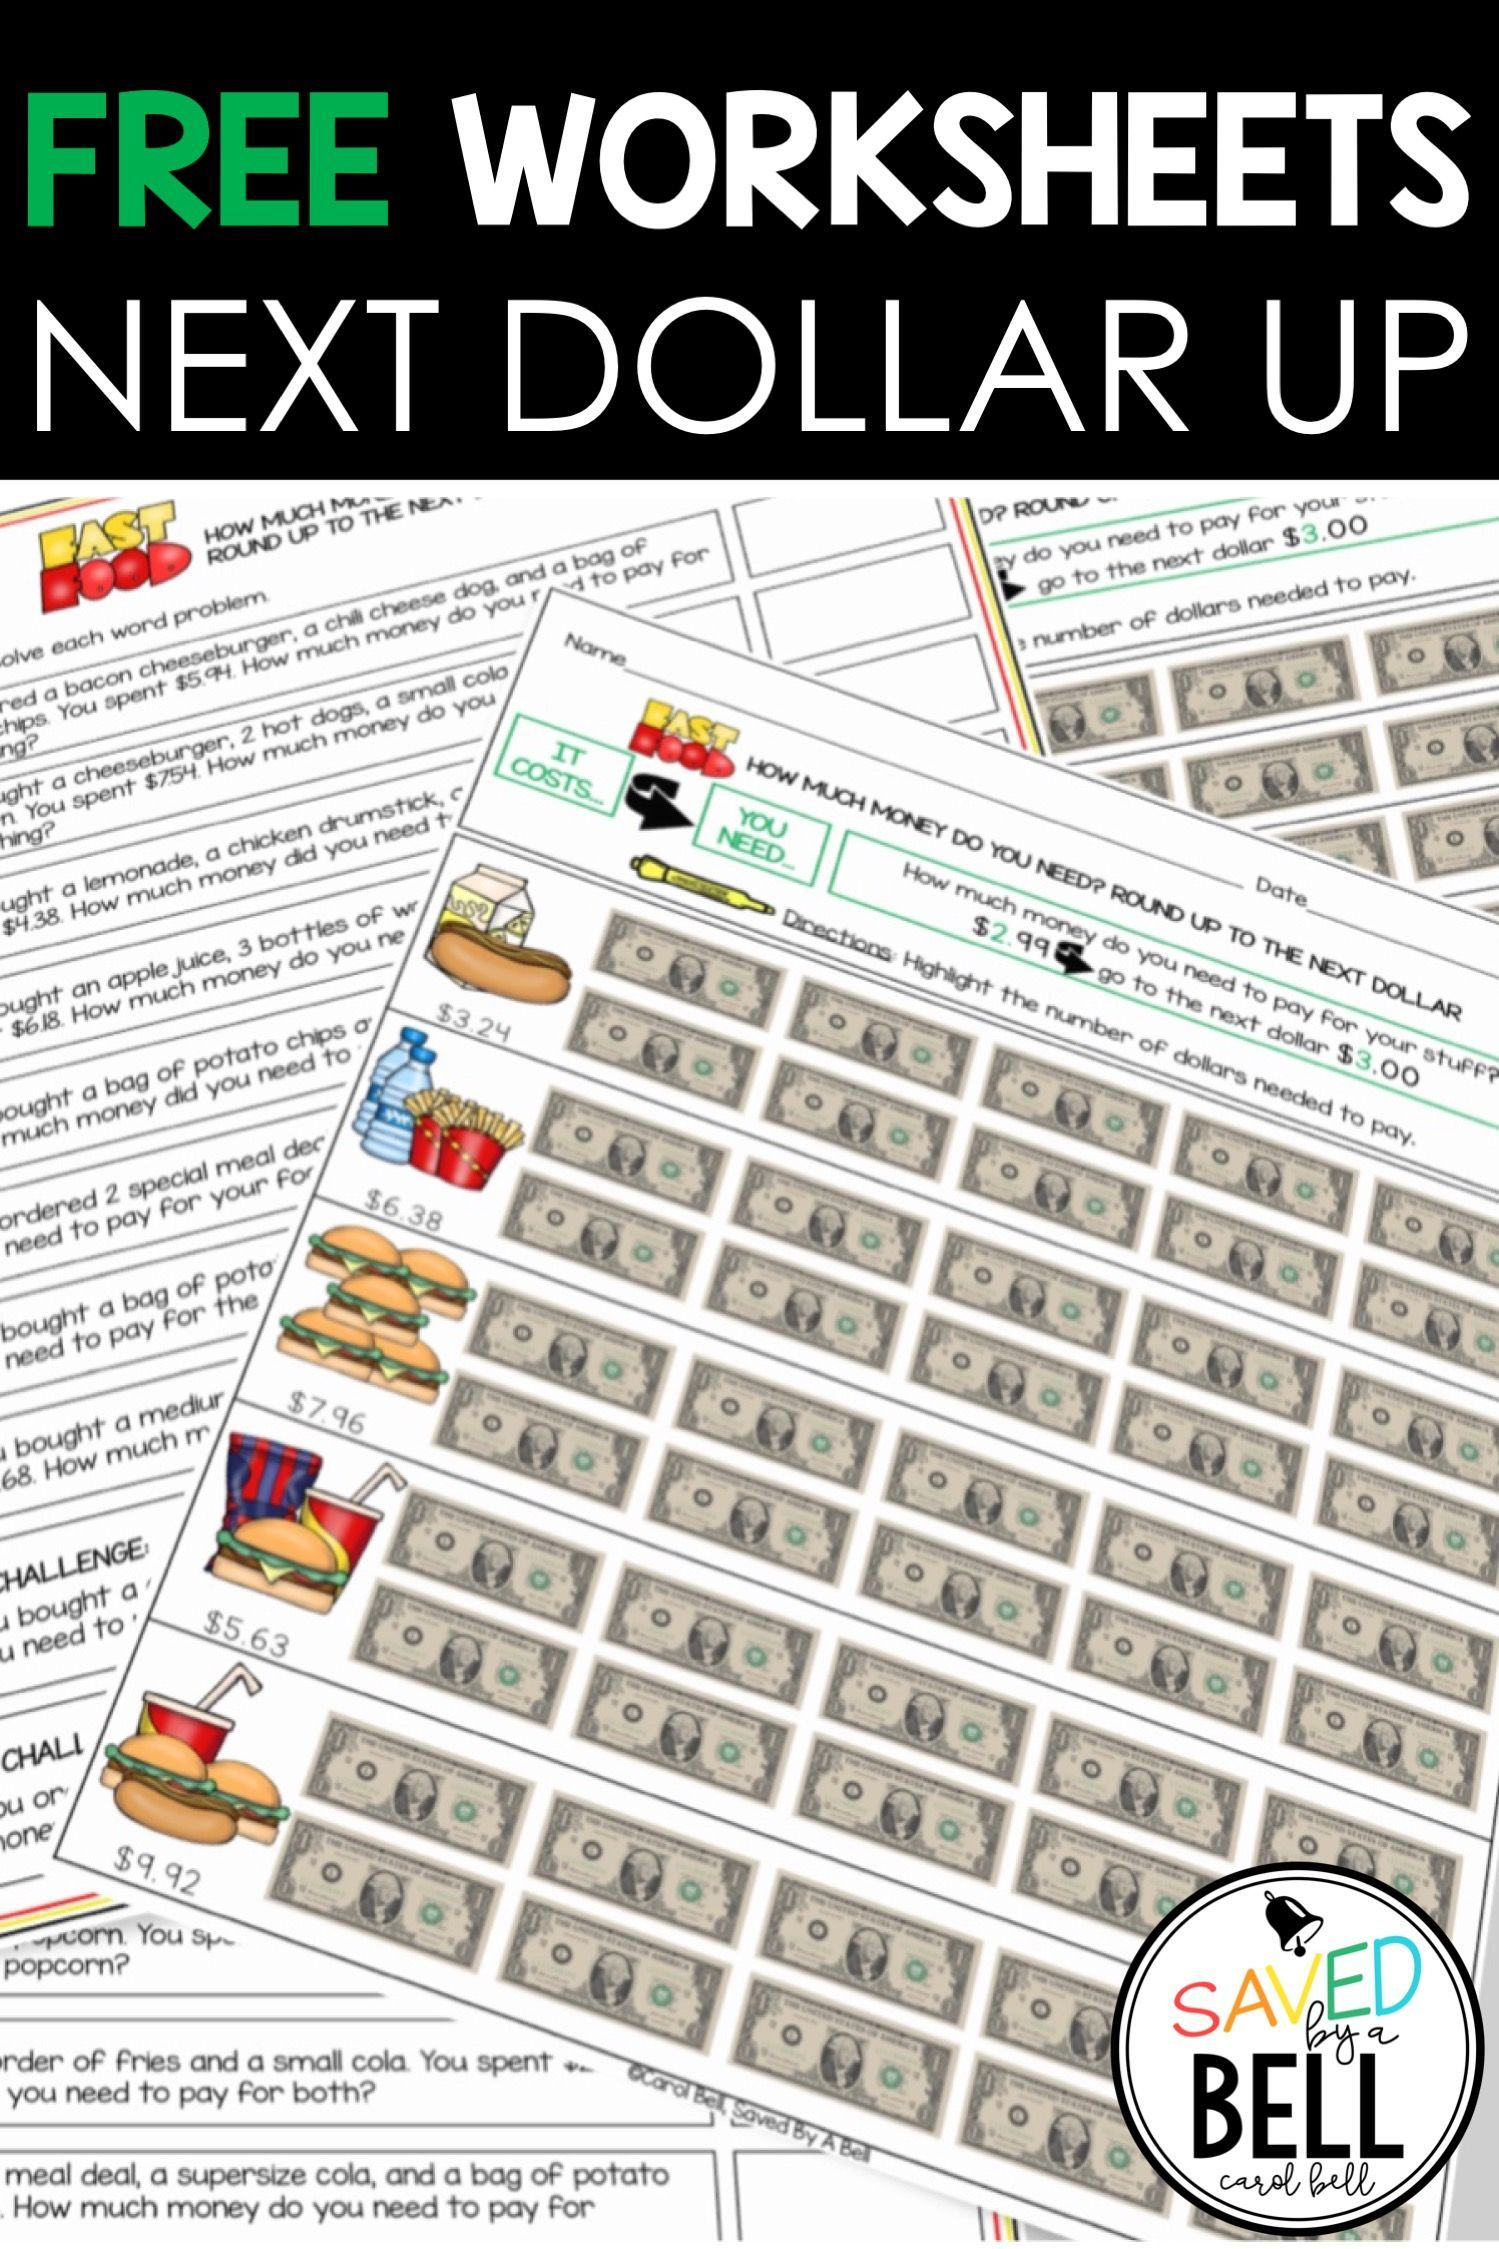 Free Next Dollar Up Worksheets Special Education Math Special Education Worksheets Life Skills Classroom